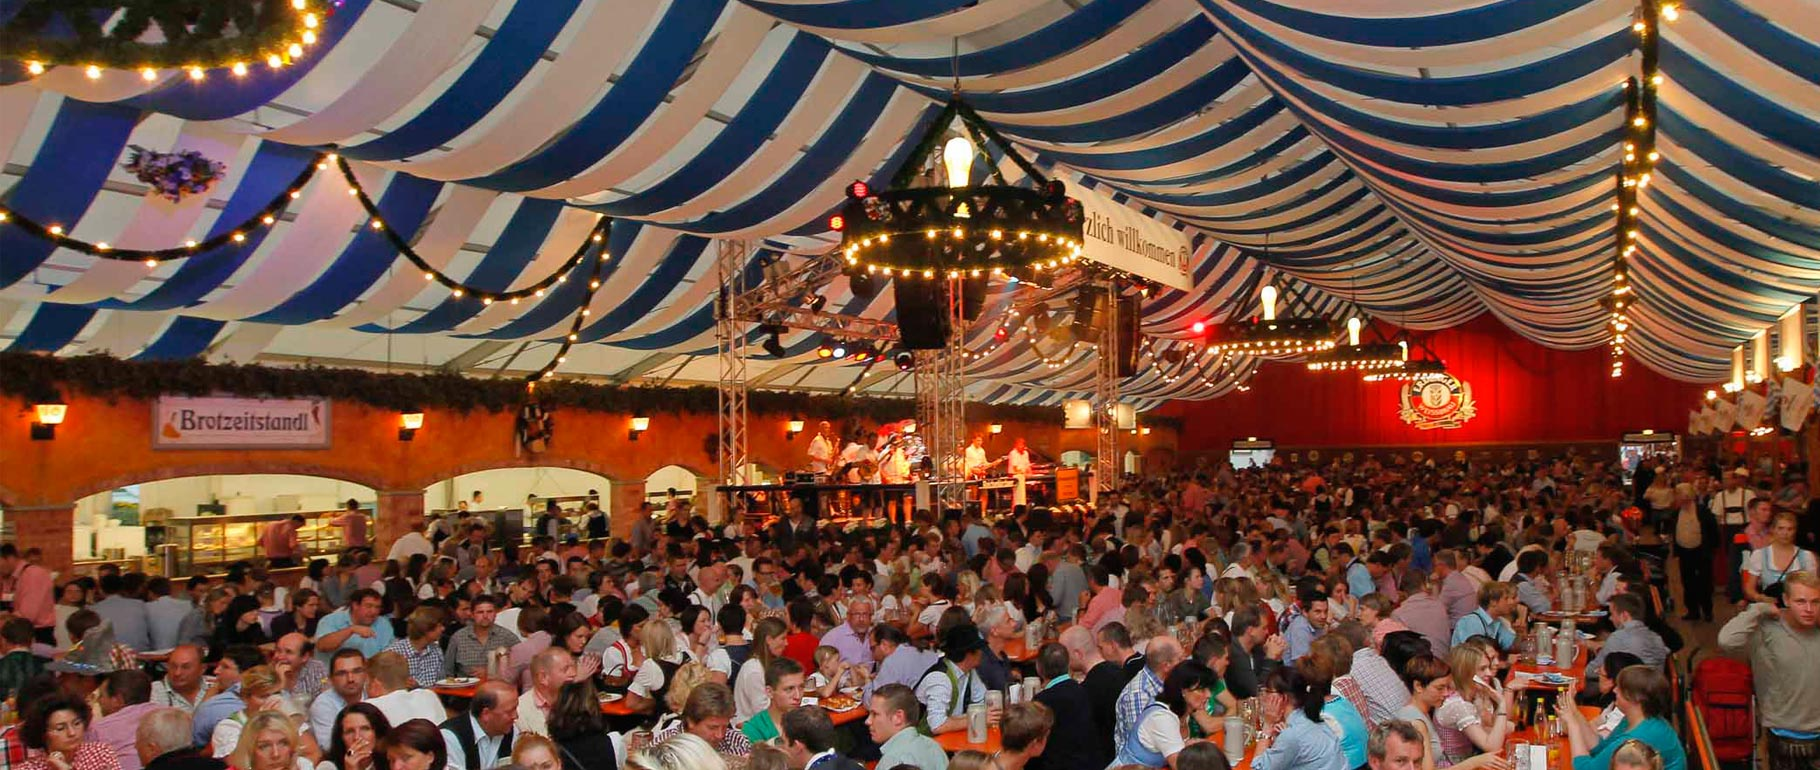 Oktoberfest celebrations featuring ERDINGER